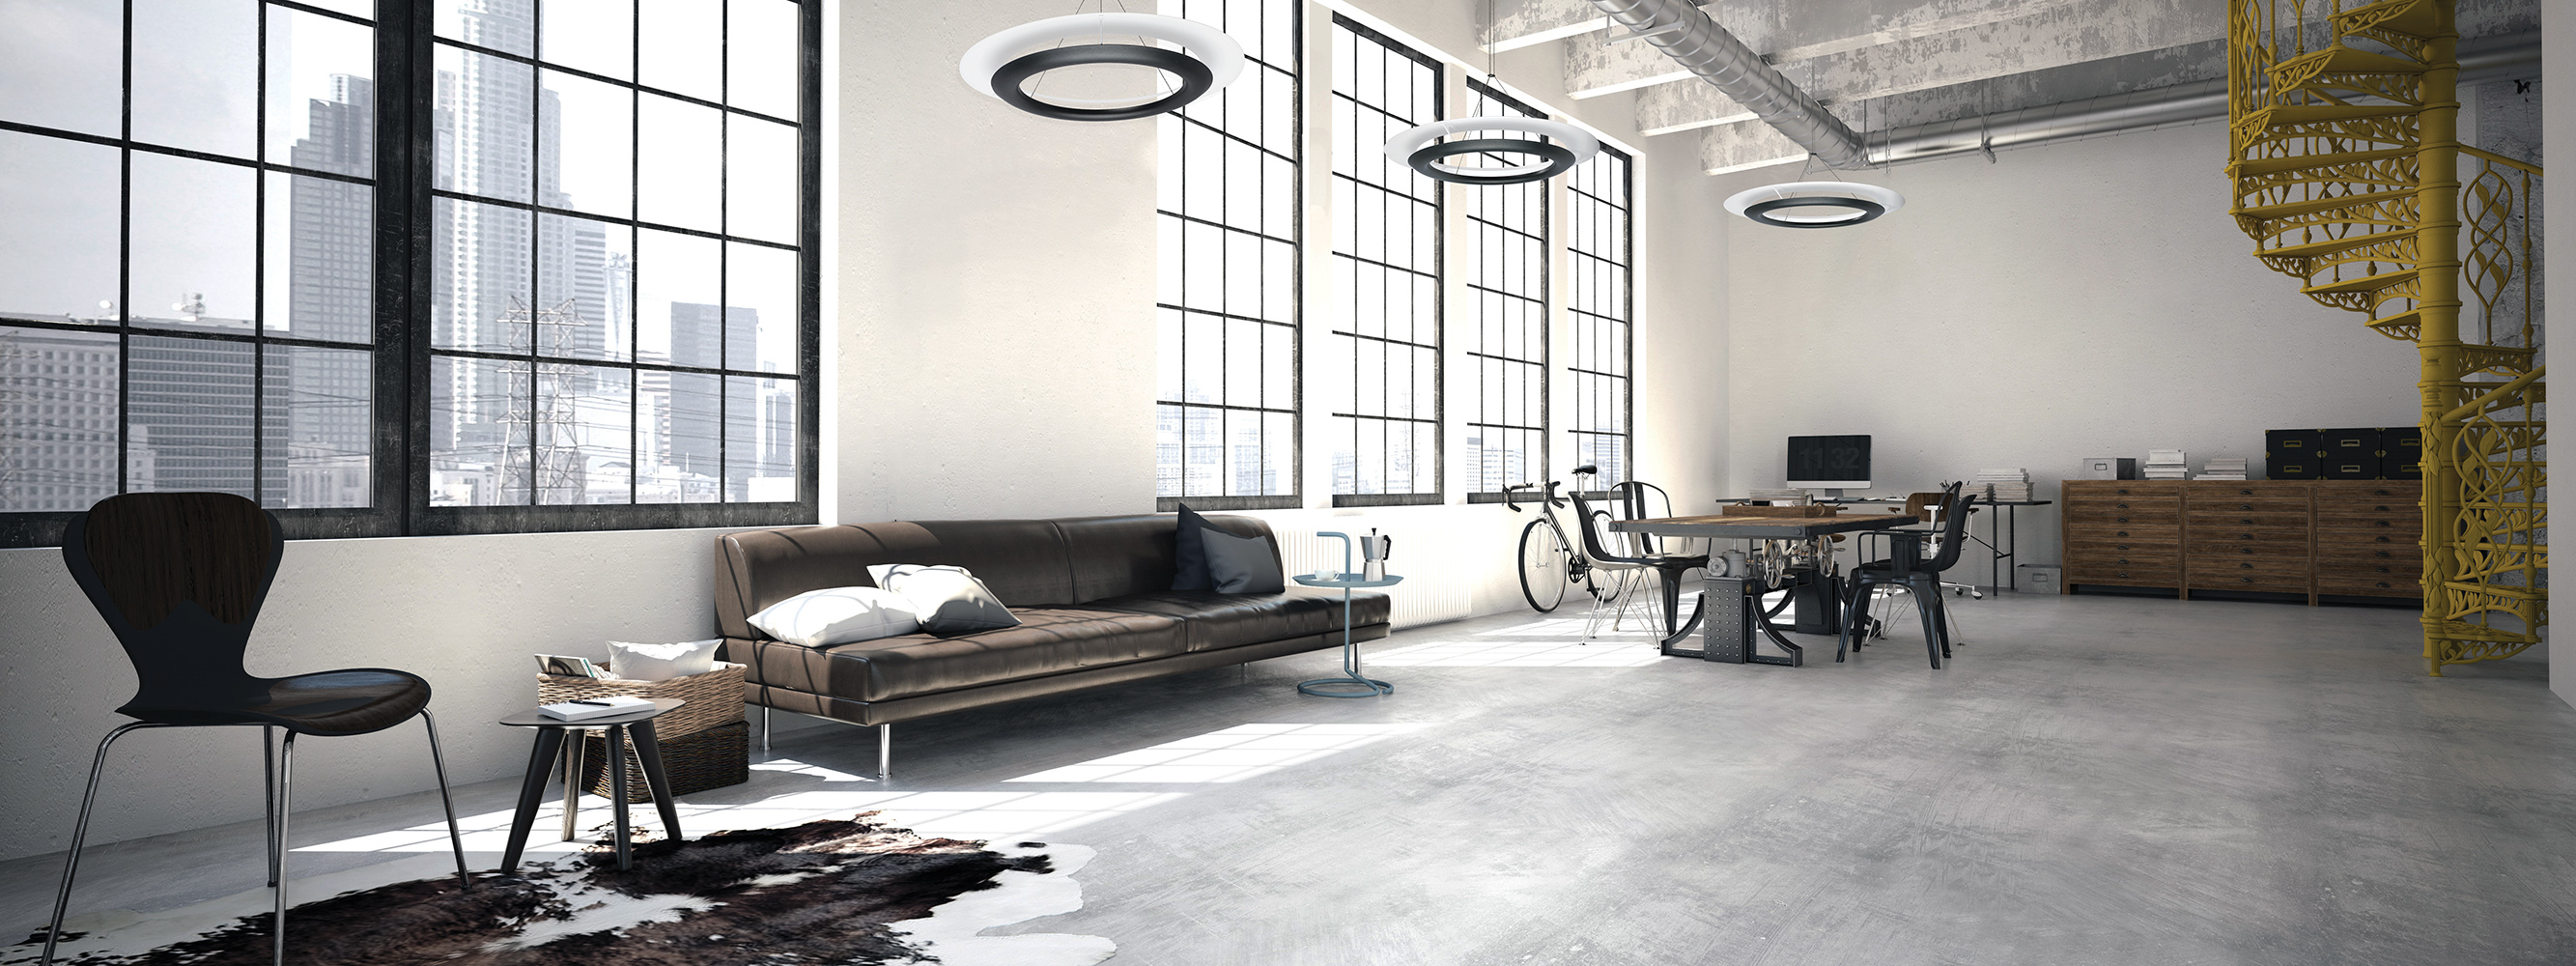 Ultra-modern Cosmo pendants in a sleek apartment lighting design along large windows and a clean loft space